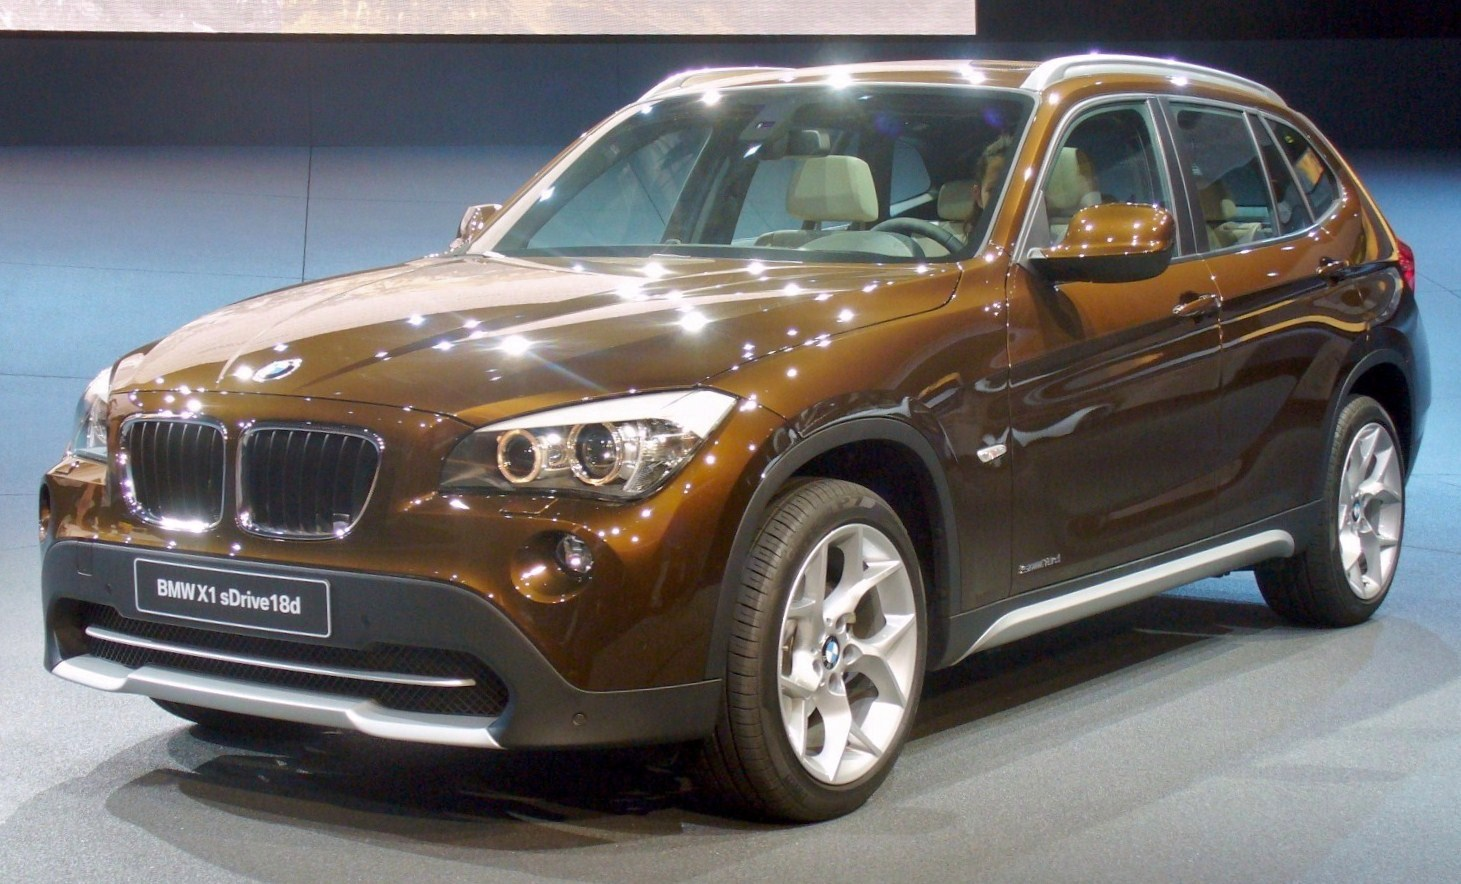 bmw x1 sdrive 18d technical details history photos on better parts ltd. Black Bedroom Furniture Sets. Home Design Ideas